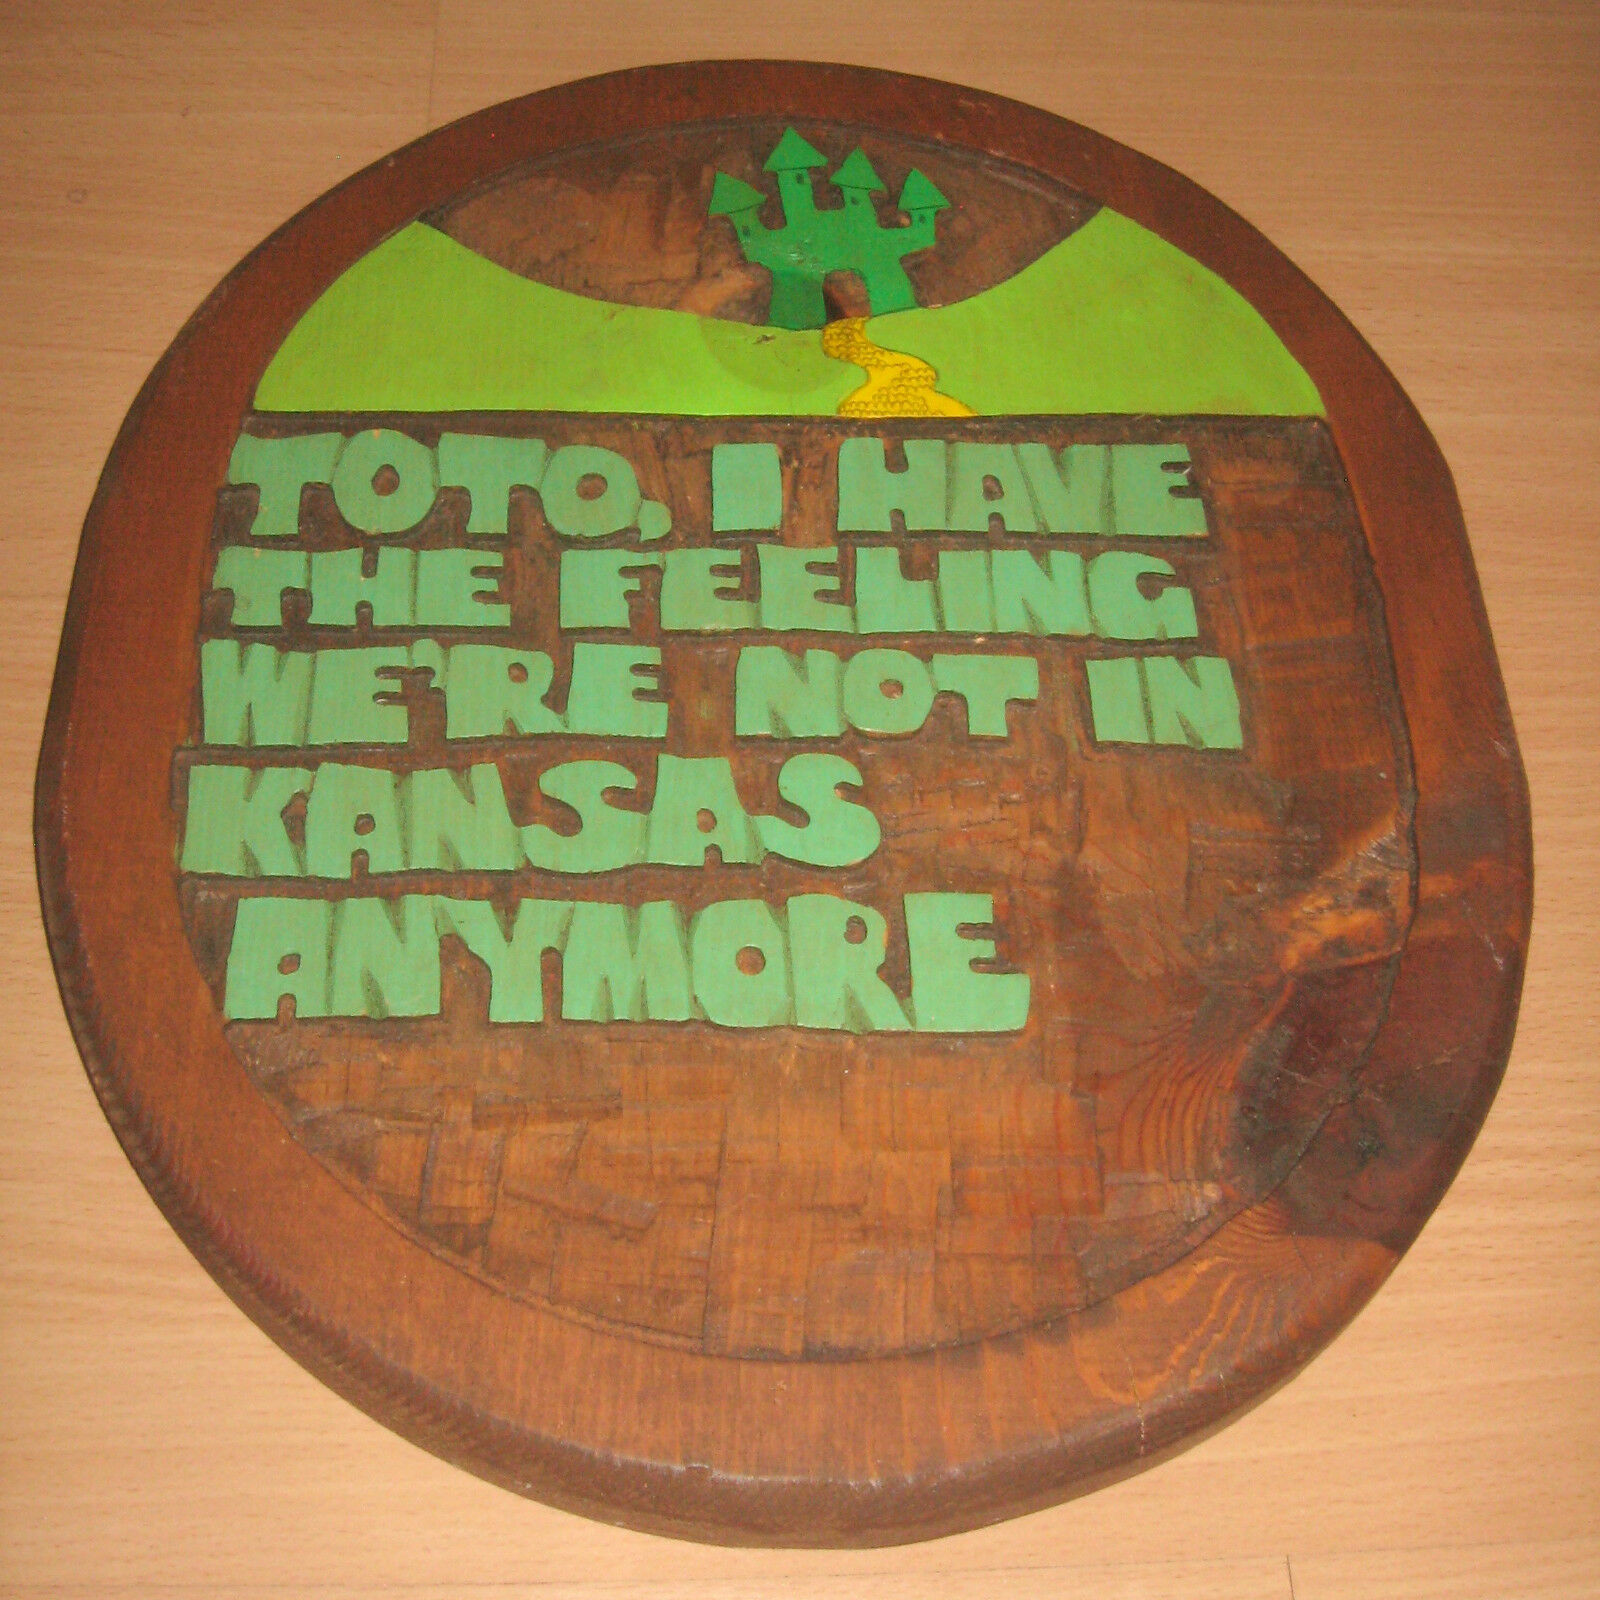 Vintage Mago di oz Wood Placca a Muro Toto, i Have The Feeling Non in Kansas